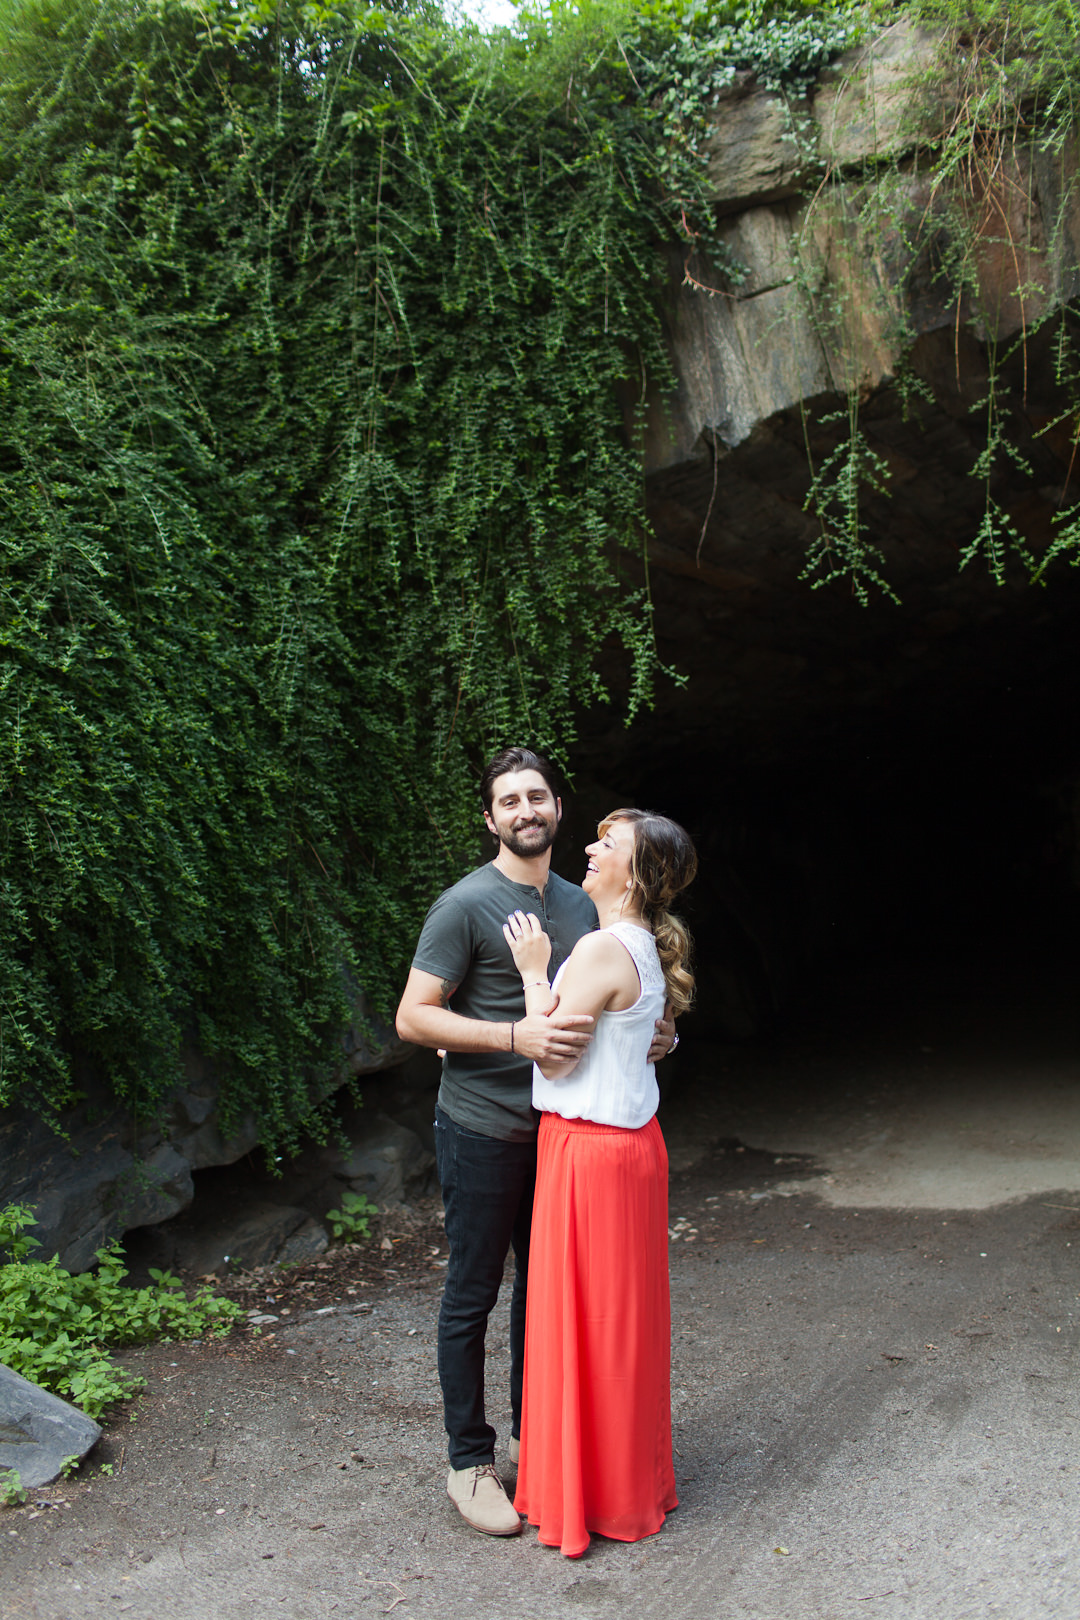 Melissa Kruse Photography - Eileen & Kenny Engagement Photos-4.jpg